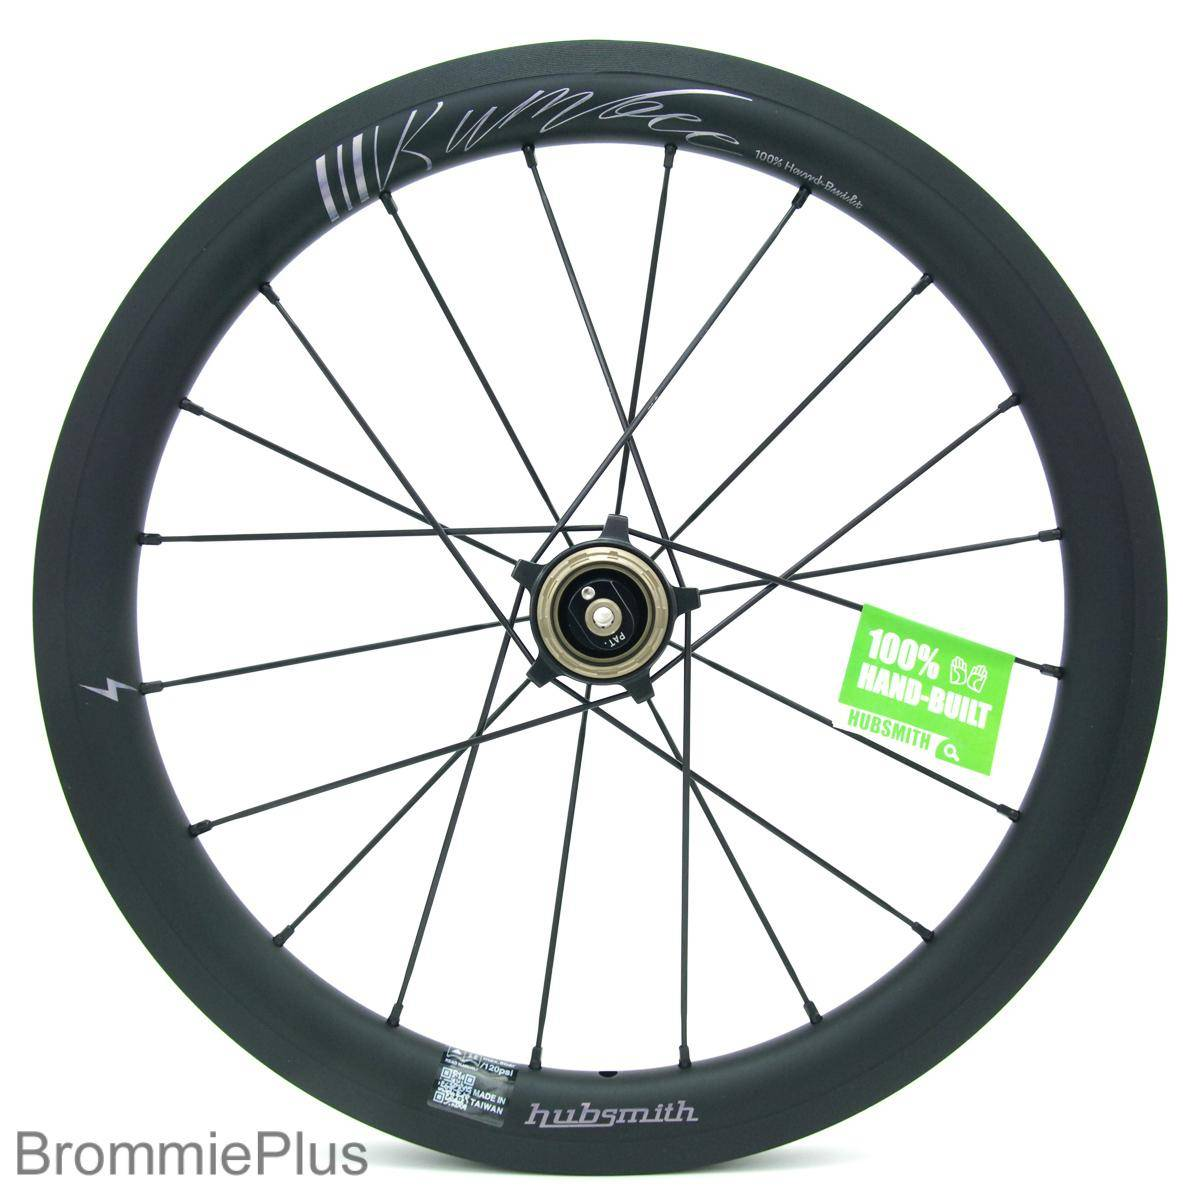 Hubsmith A349 Bumbee 3 Speed wheelset for Brompton - Black